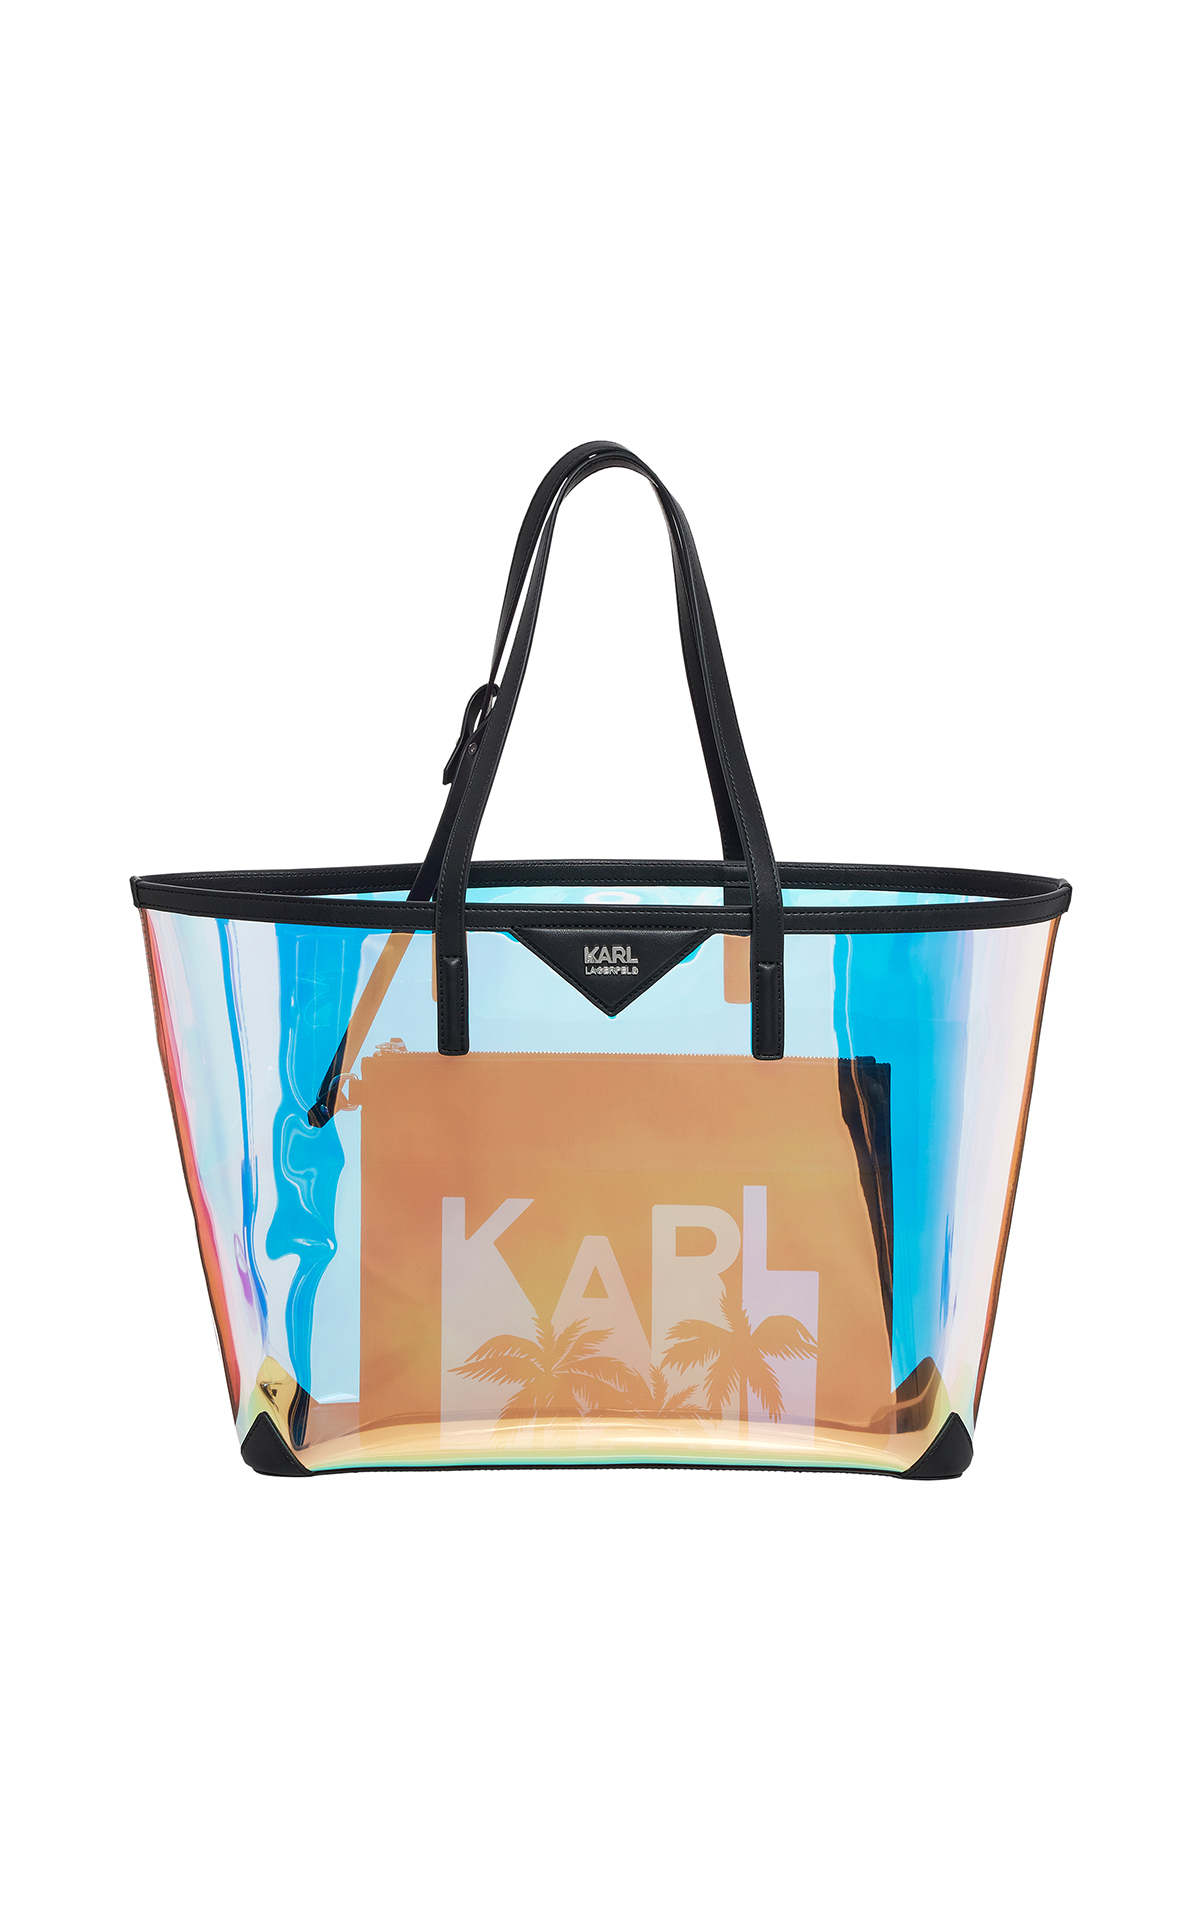 Karl Lagerfeld Karlifornia shopper at The Bicester Village Shopping Collection